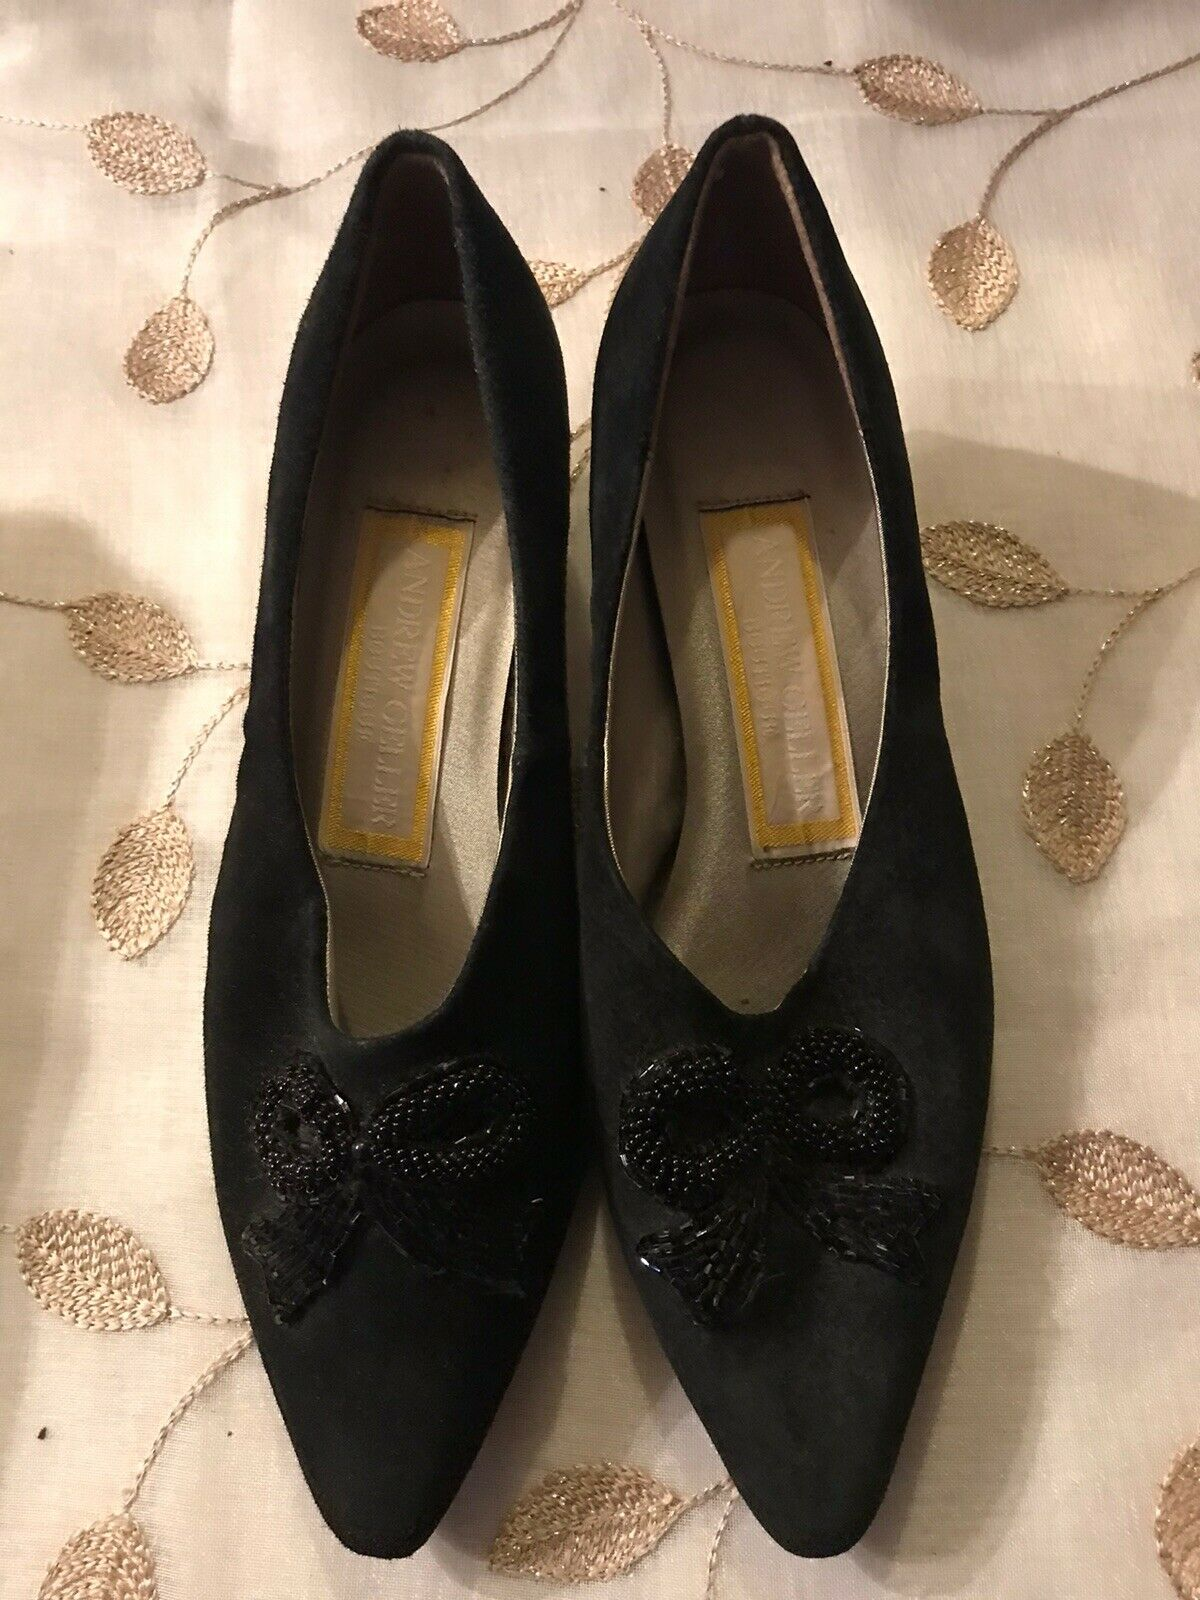 Andrew Geller Womens Shoes 1 Inch Heel Black Beaded Bow Size 8.5M Leather Upper